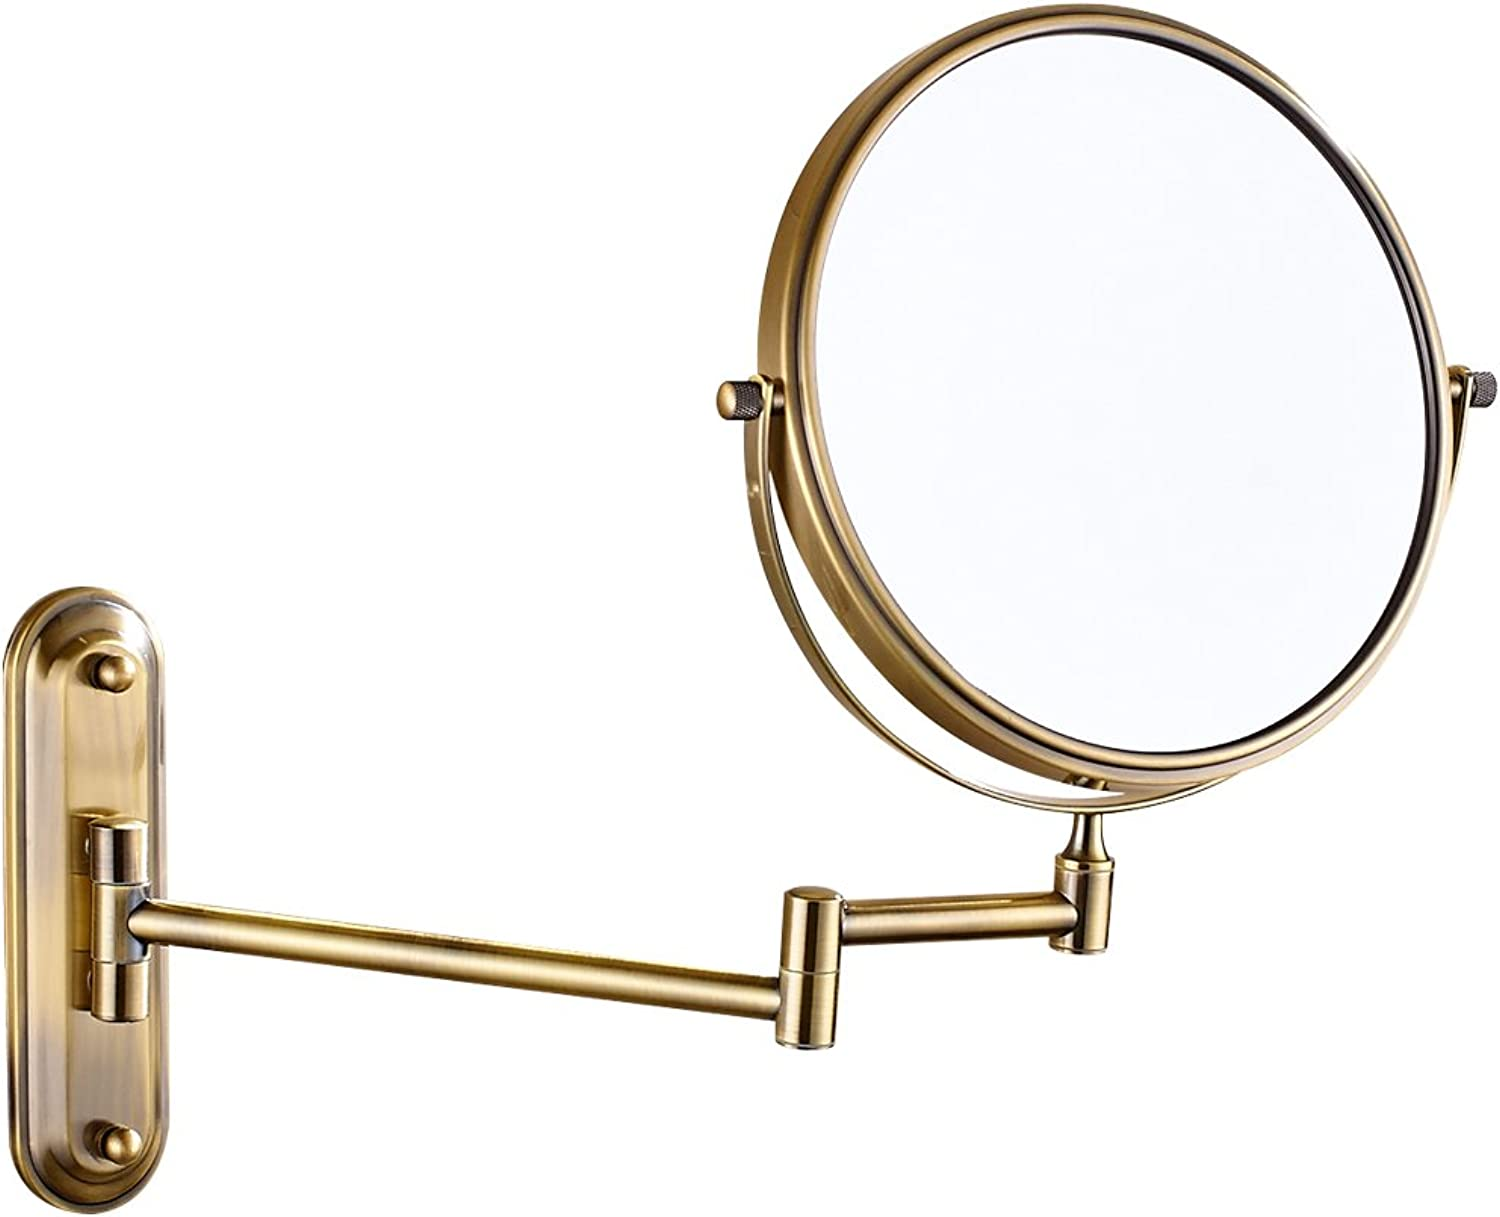 GURUN Two-Sided Swivel Wall Mounted Makeup Mirror with 10X Magnification,Antique Brass 1206K(8Inch,10X)